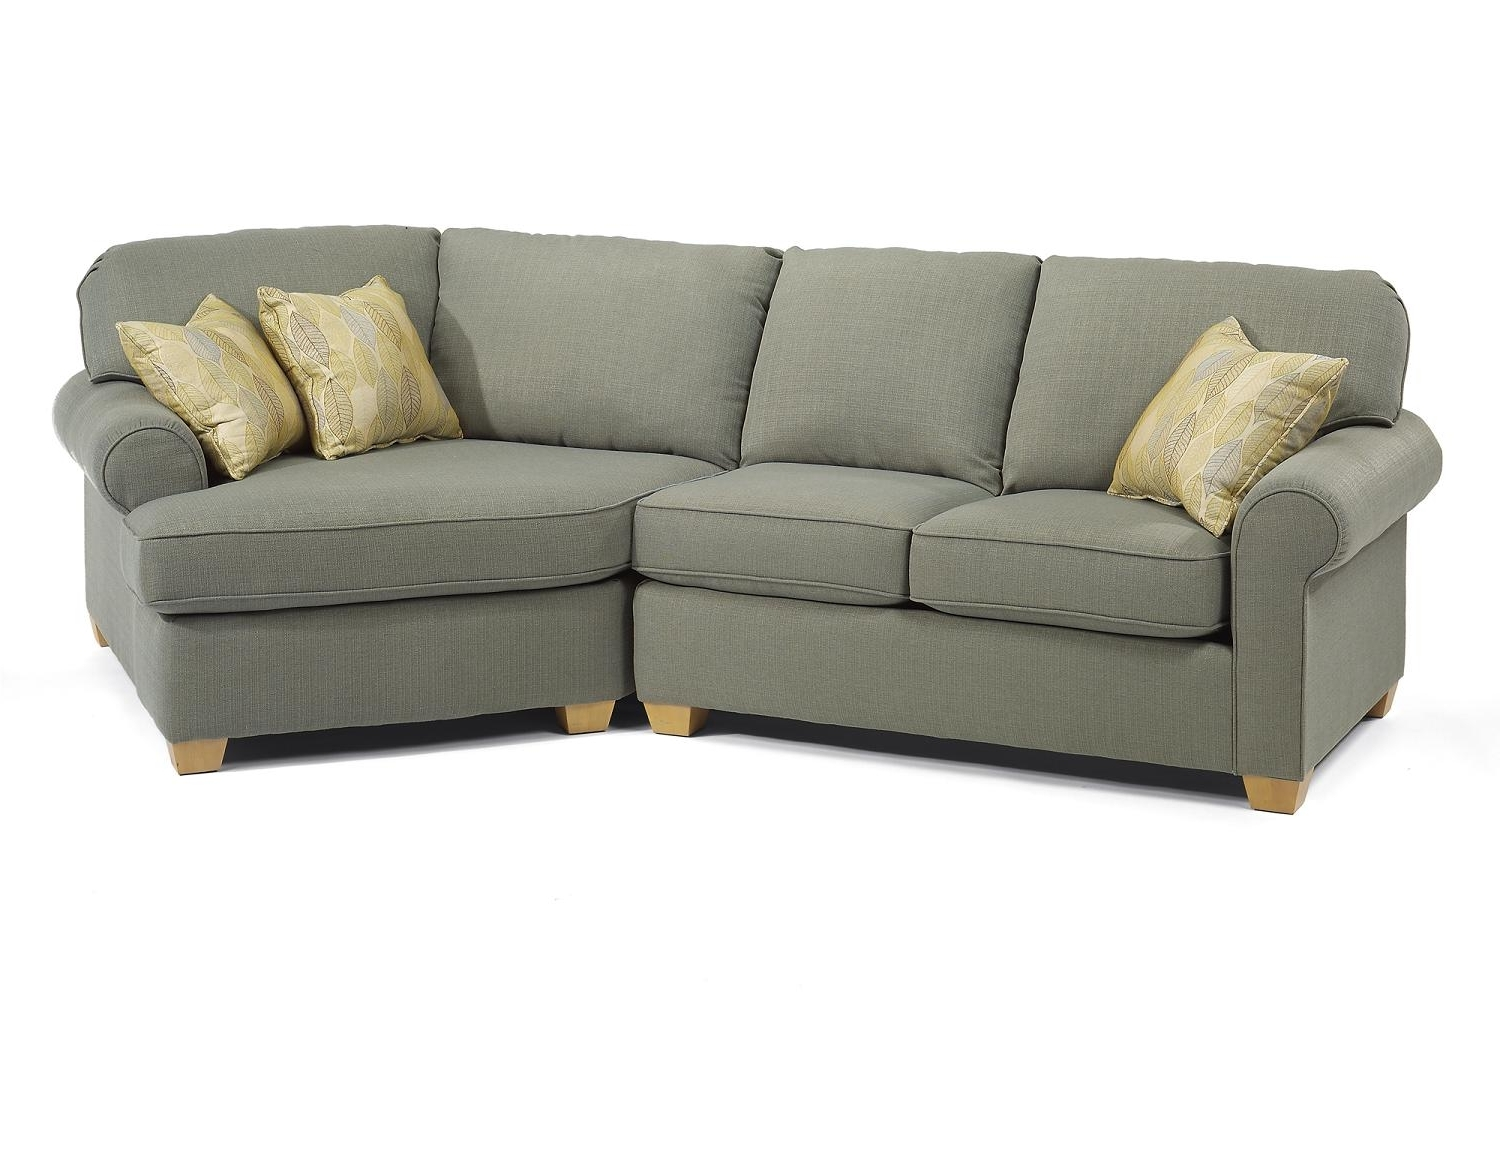 Angled Chaise Sofas Throughout Most Recent Angled Chaise Sofa – Plymouth Furniture (View 7 of 20)